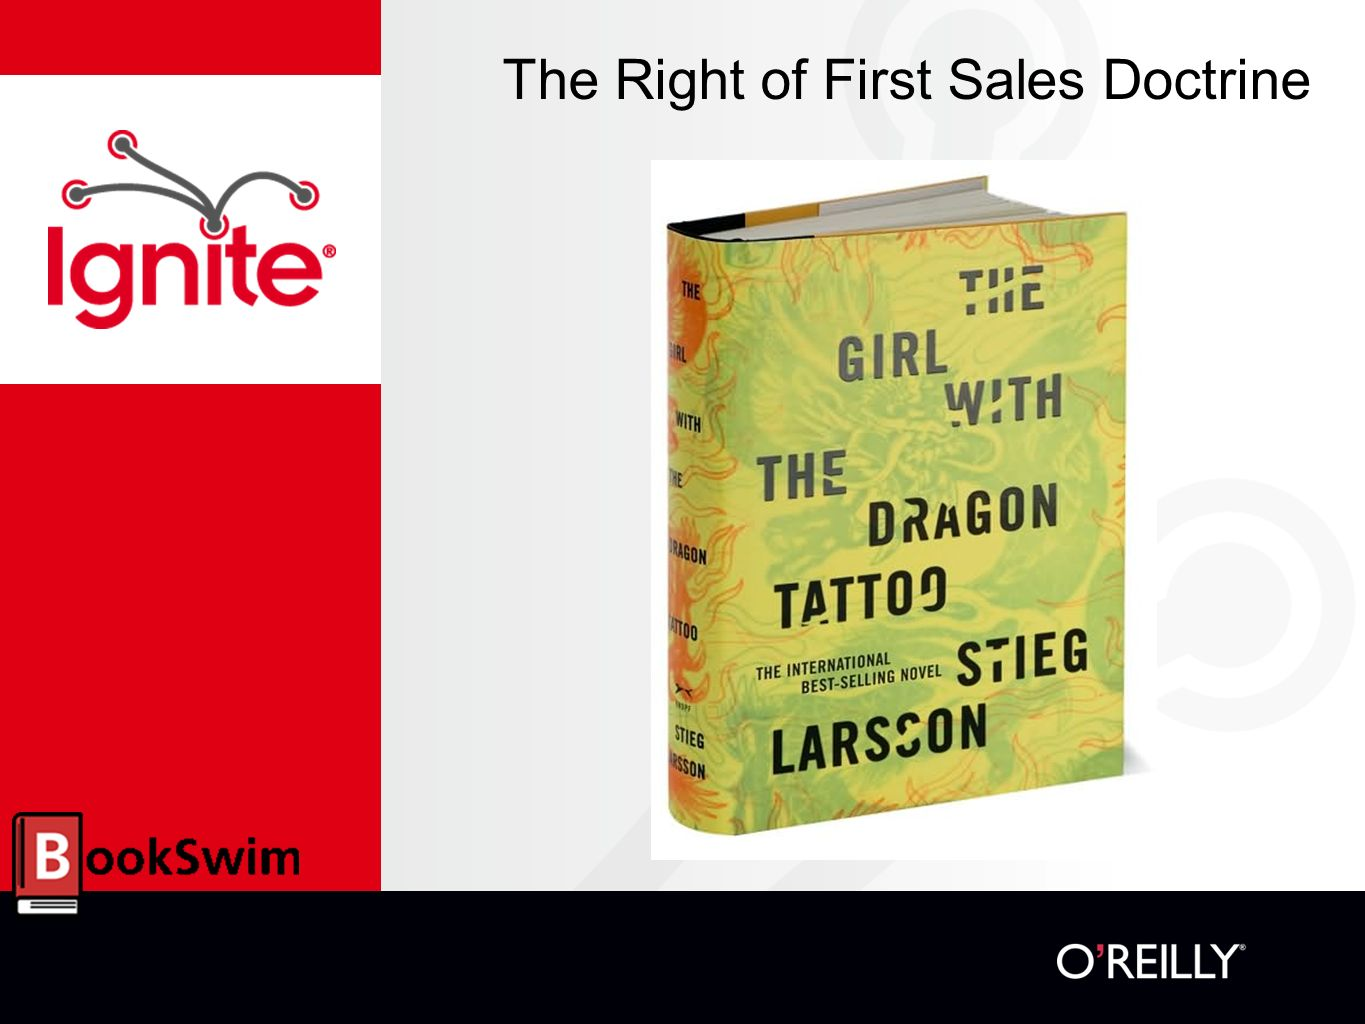 The Right of First Sales Doctrine